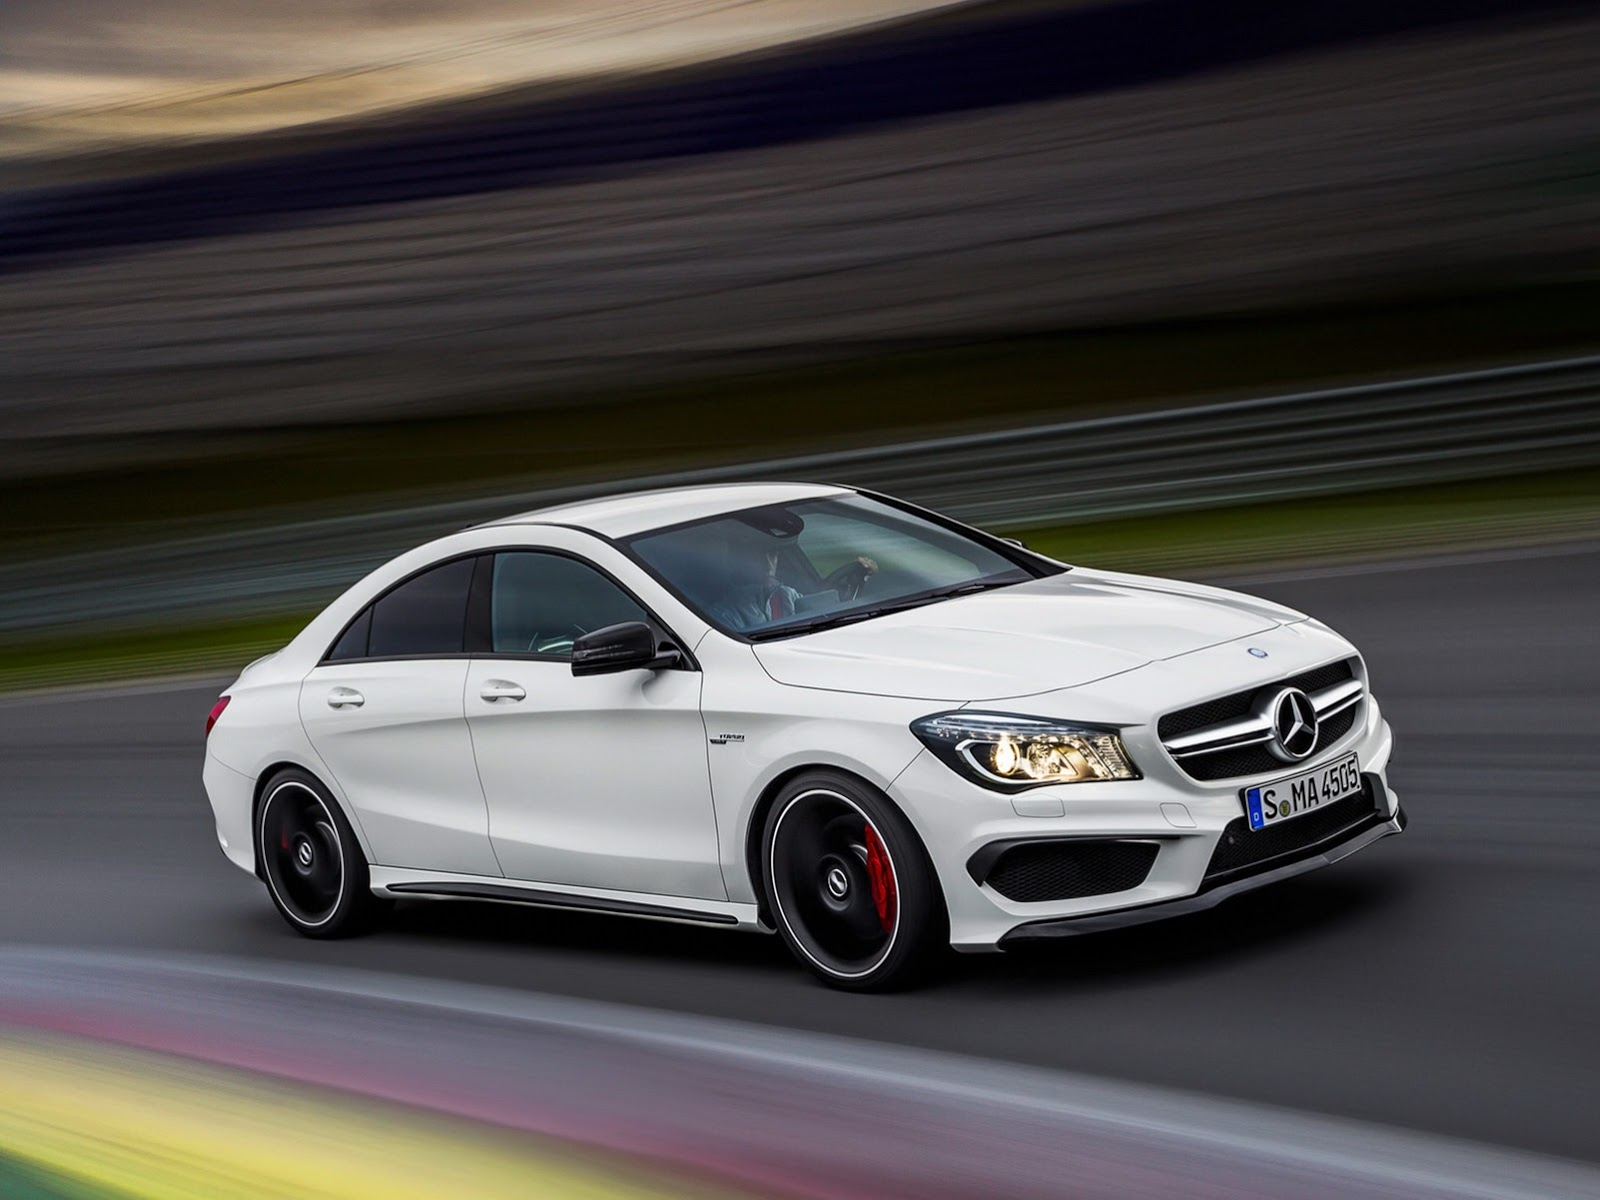 Mercedes benz cla 45 amg images leaked for Mercedes benz amg cla 45